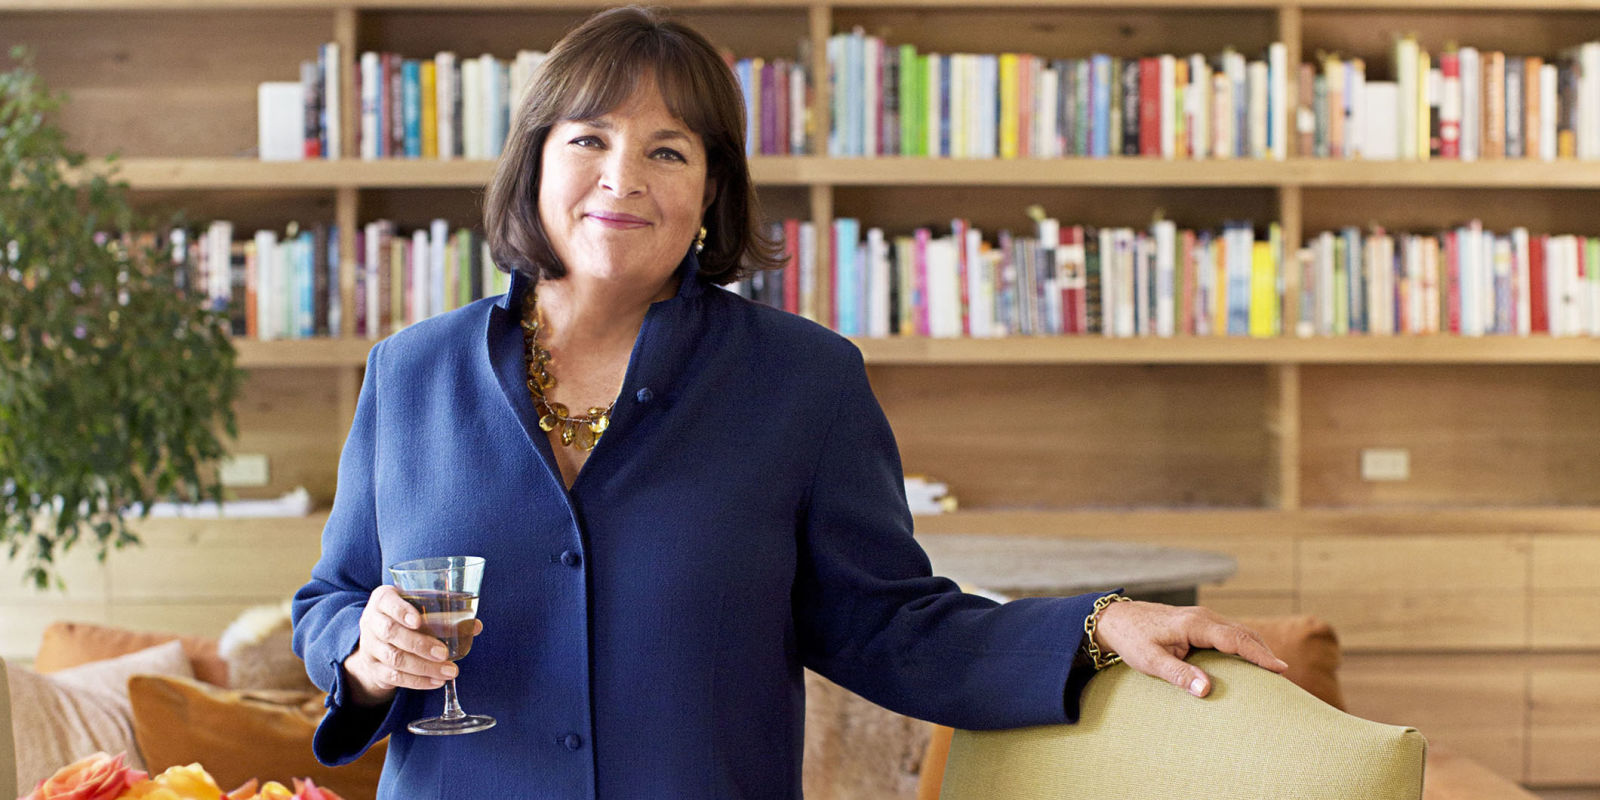 13 things you never knew about ina garten - ina garten facts